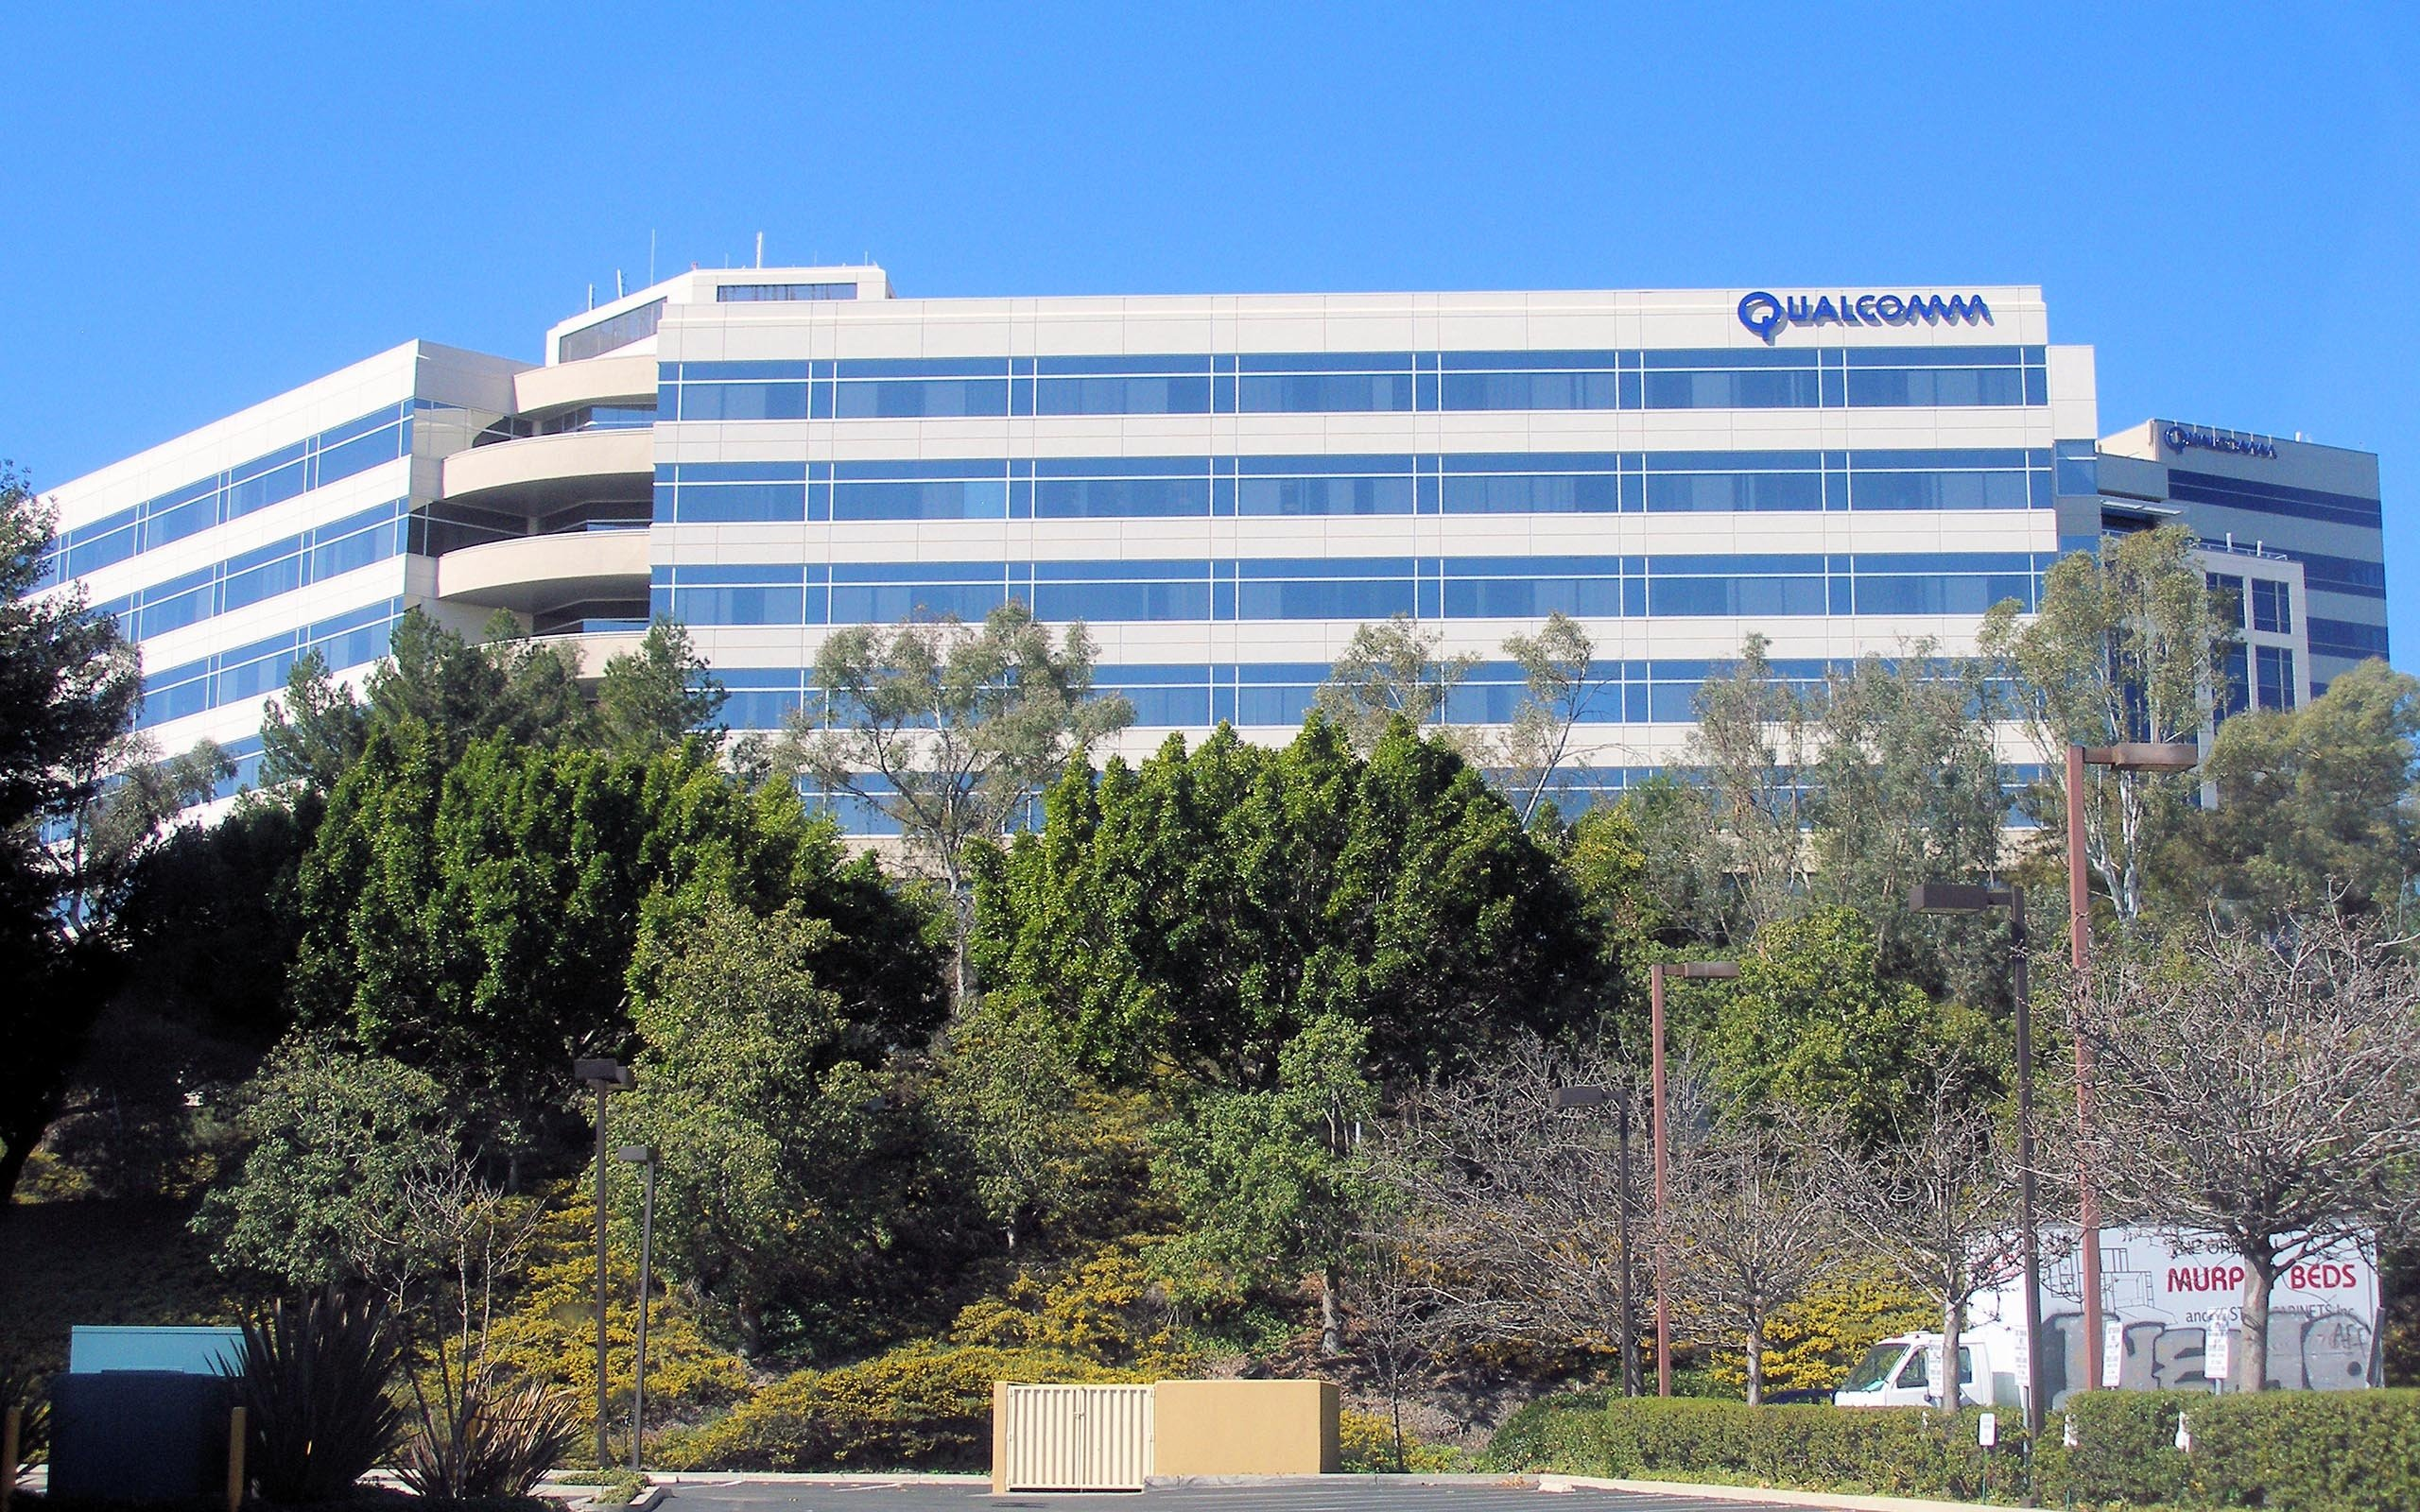 Wallpaper company qualcomm headquartered san diego california usa 2560x1600